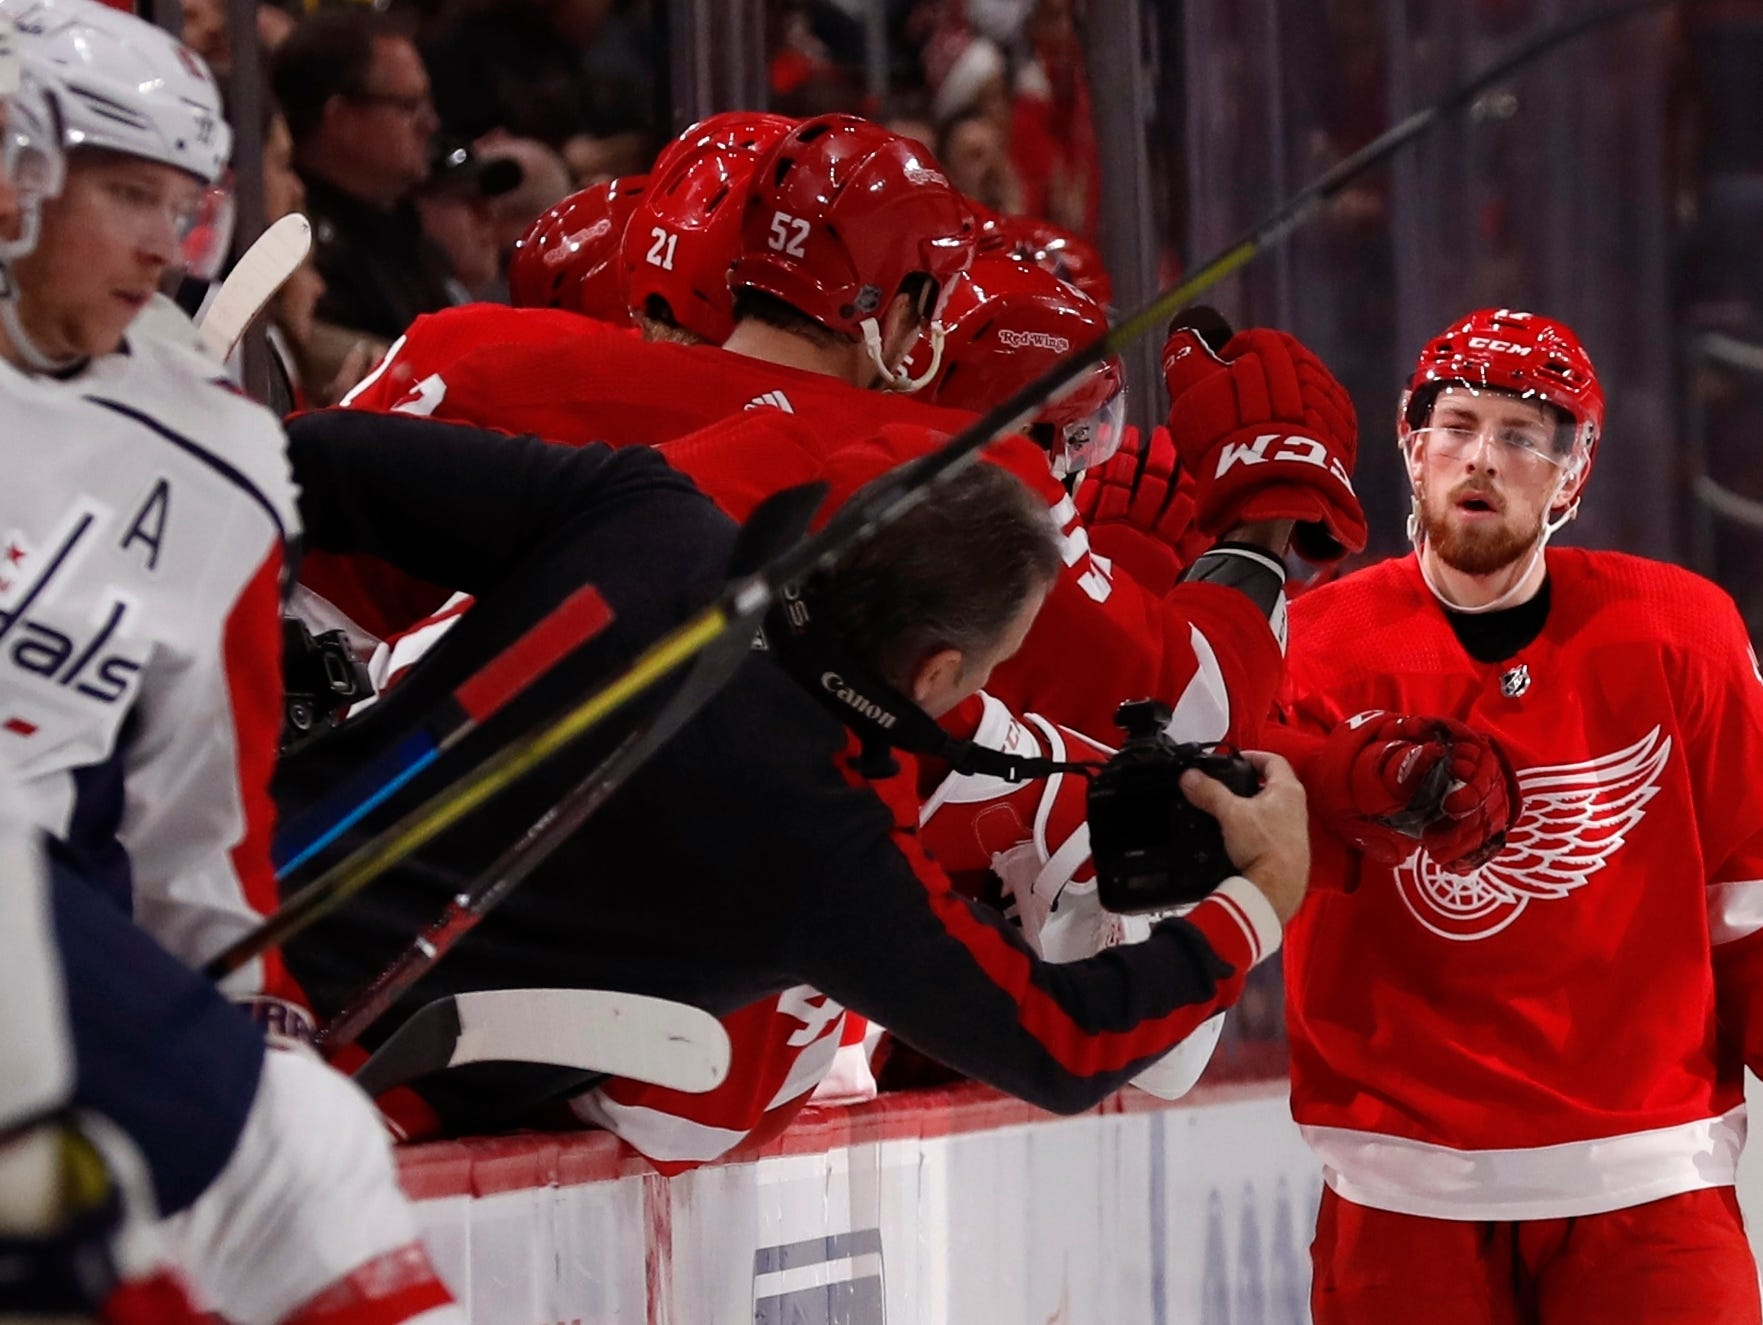 Detroit Red Wings defenseman Filip Hronek is congratulated by teammates after scoring during the second period.